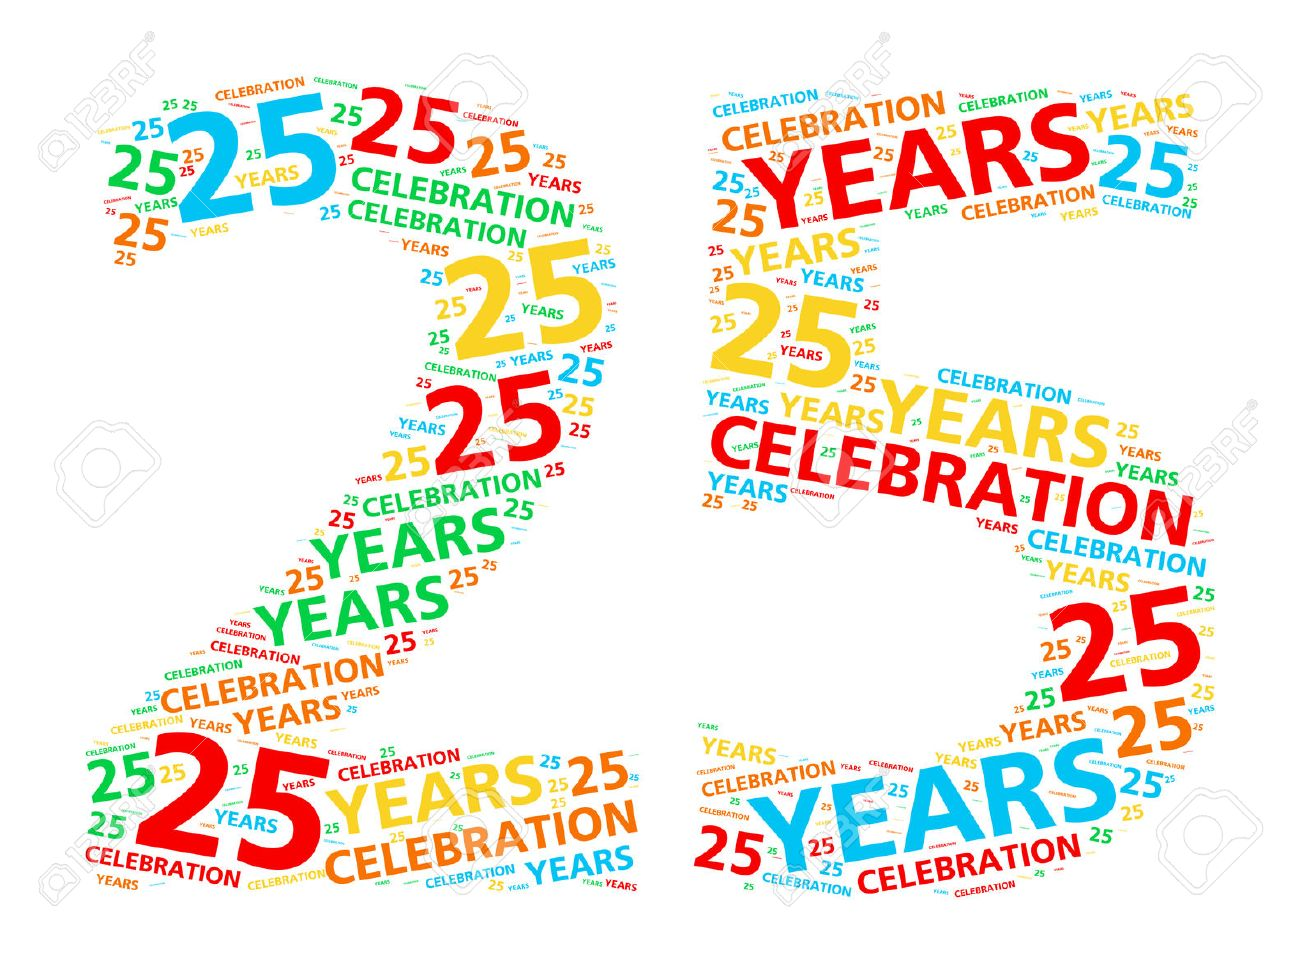 Colorful word cloud for celebrating a 25 year birthday or anniversary.